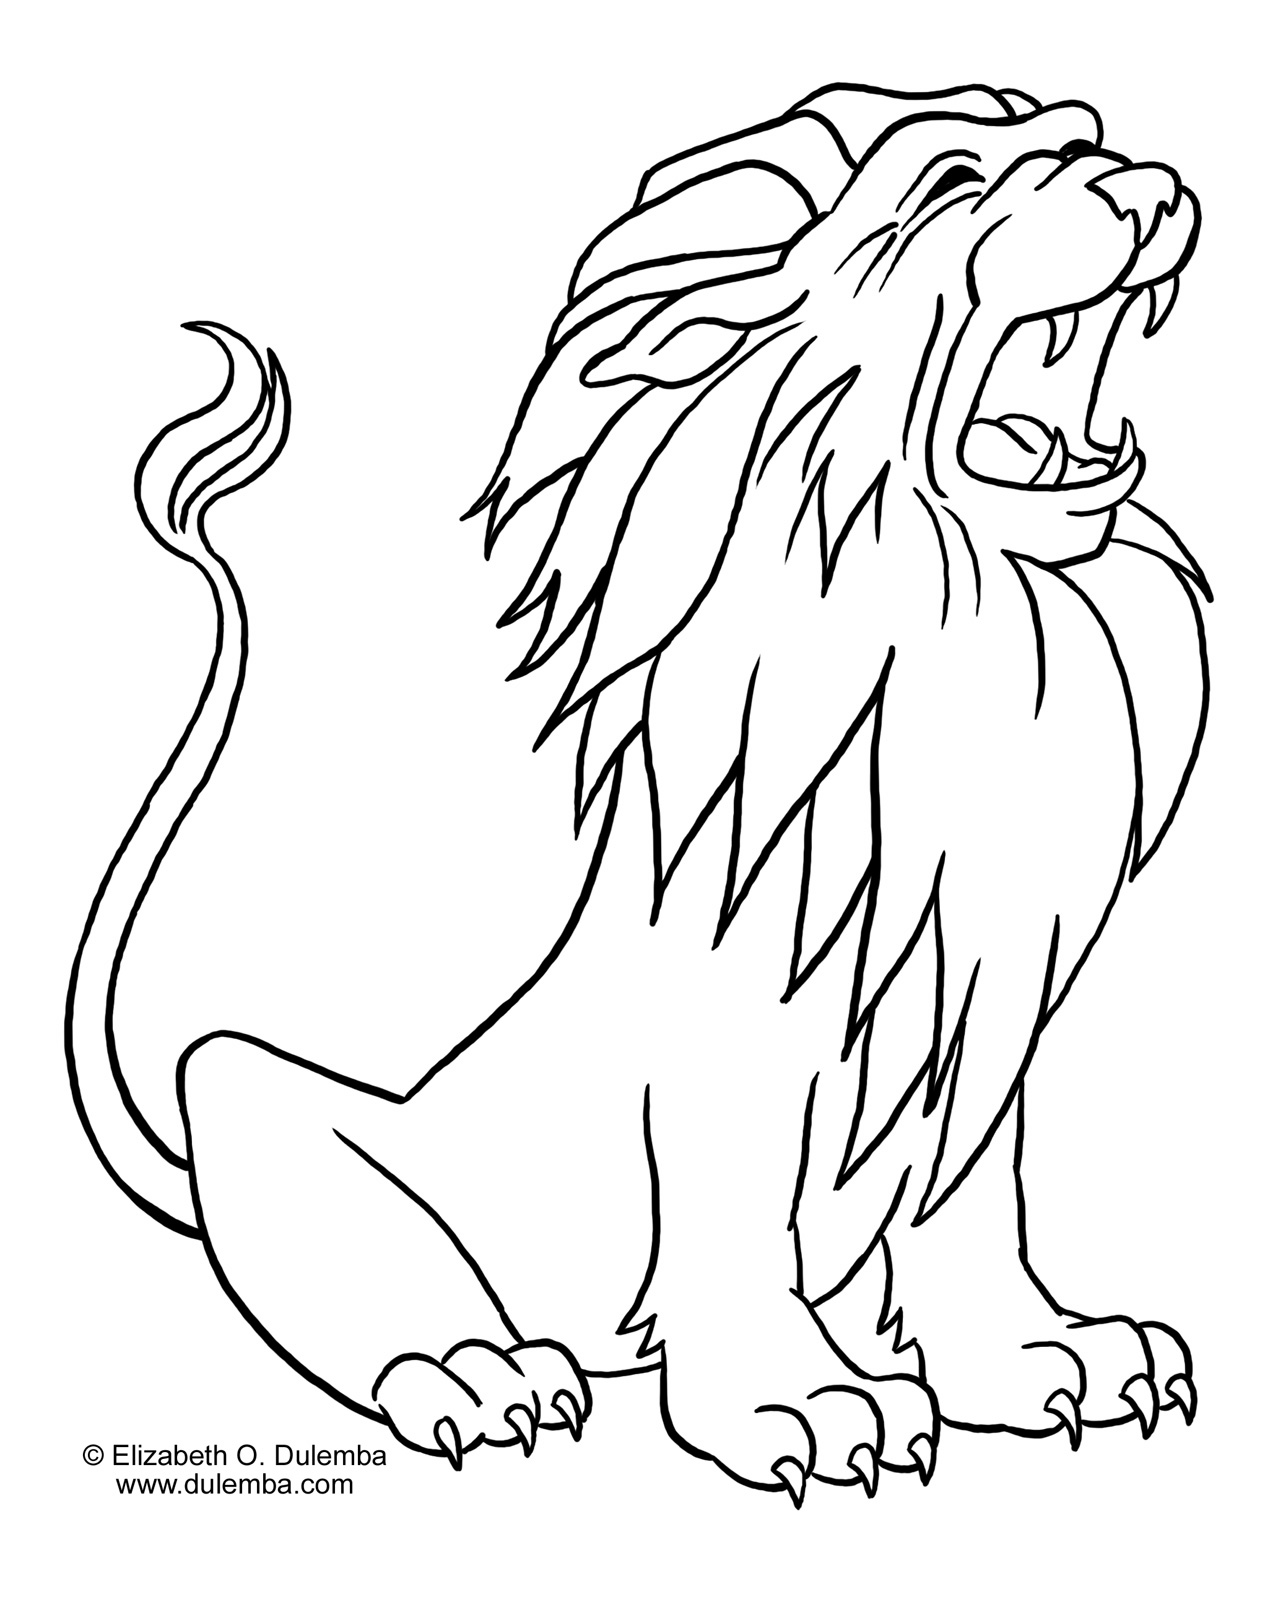 colouring pictures of lions top 25 free printable the lion king coloring pages online of pictures colouring lions